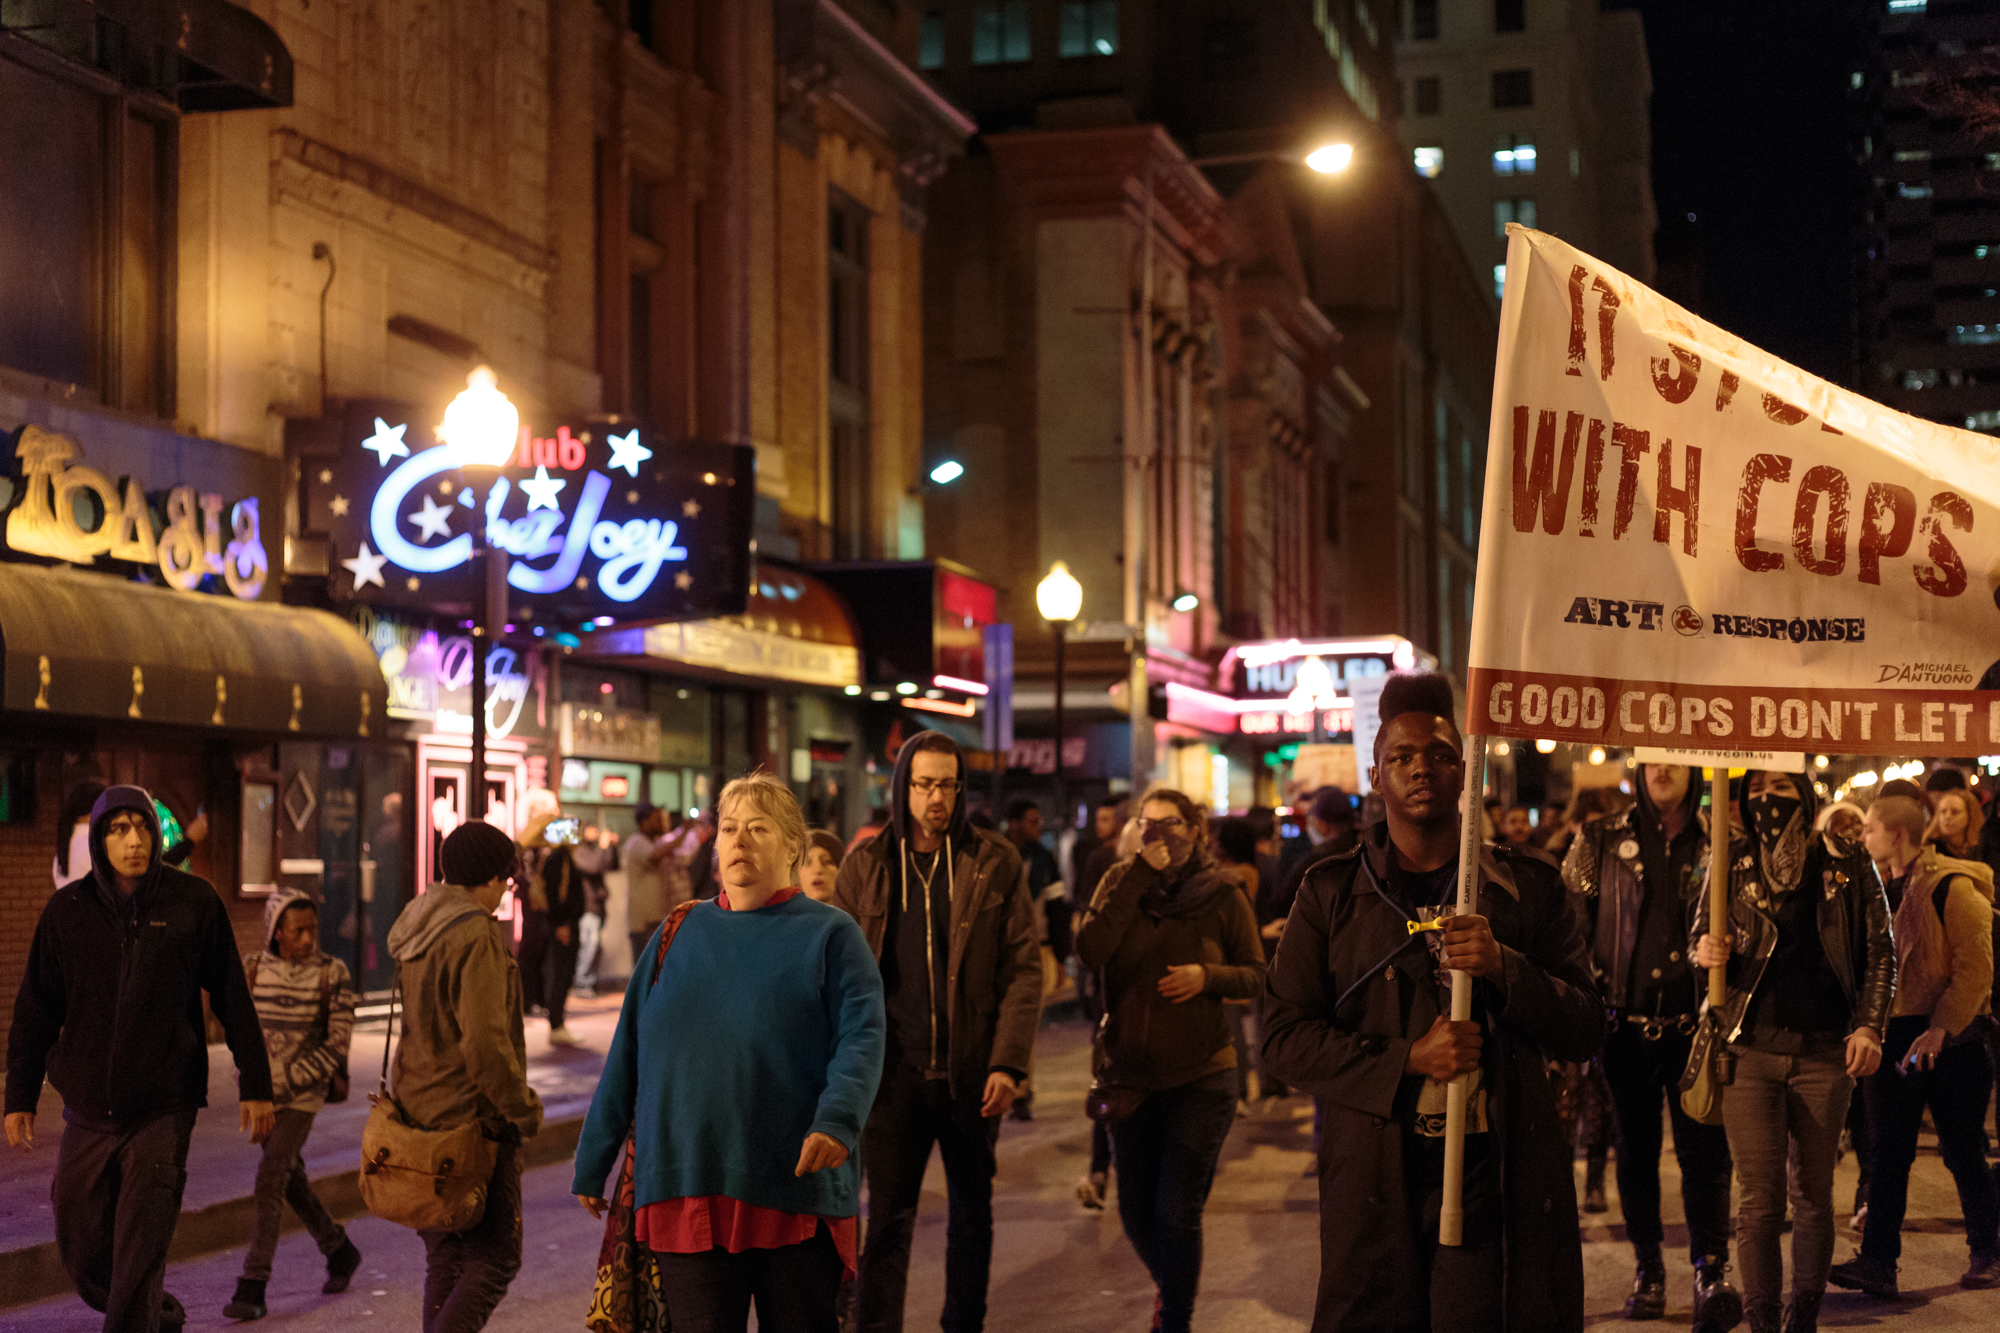 Protesters marching through President St. in Baltimore the night of the Porter mistrial ruling by Judge Barry G. Williams.